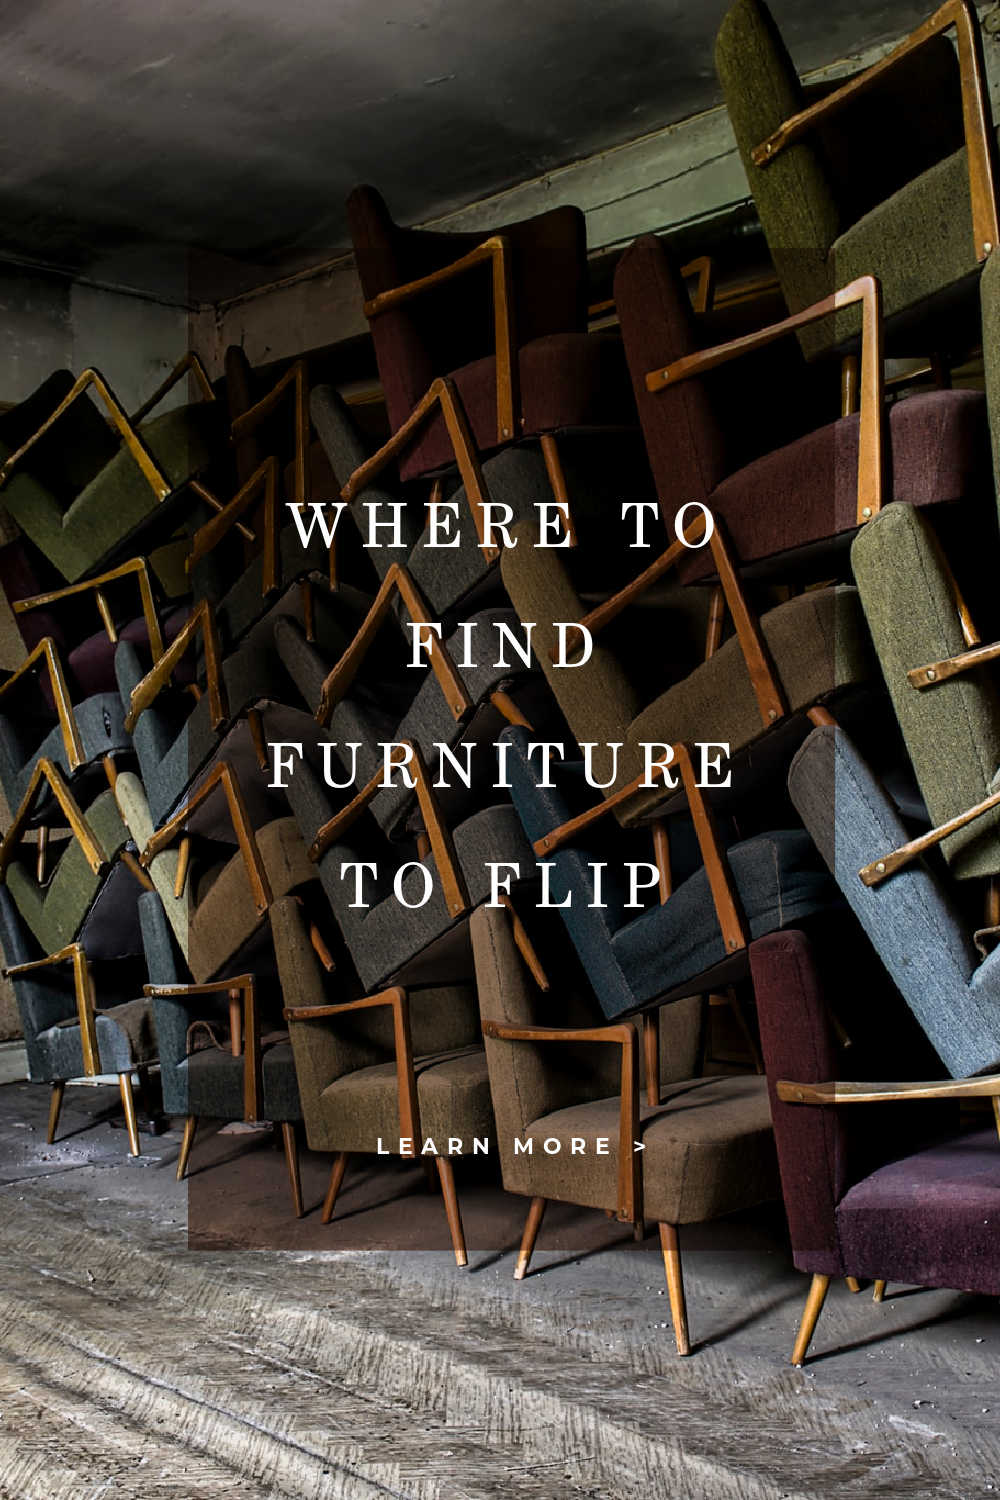 WHERE TO FIND FURNITURE TO FLIP